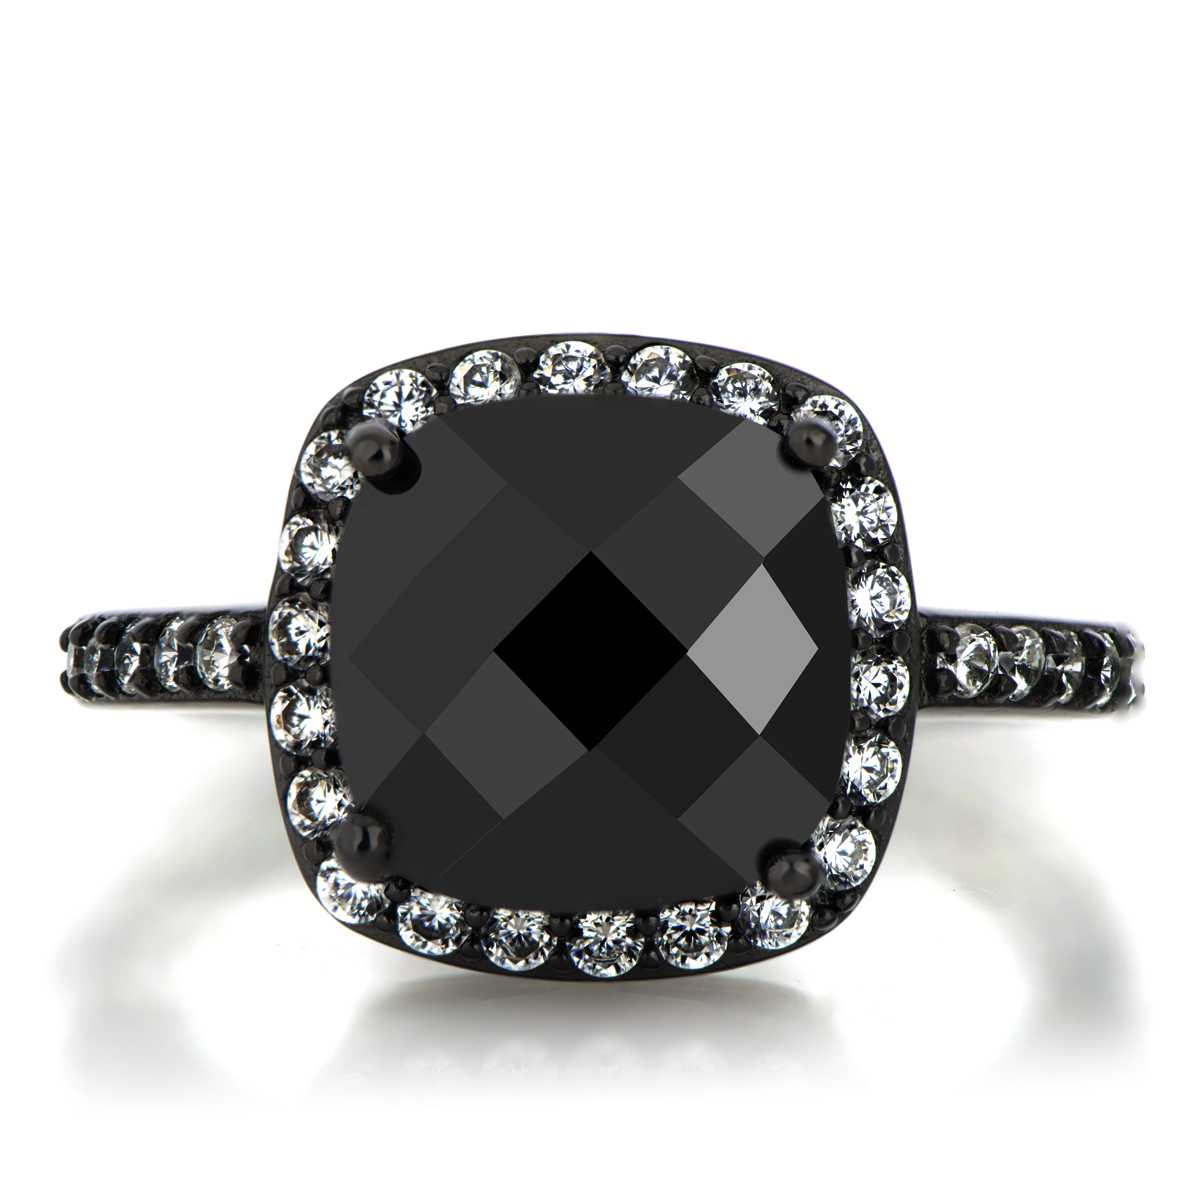 Marina s 3 8ct Cushion Cut Black CZ Engagement Ring